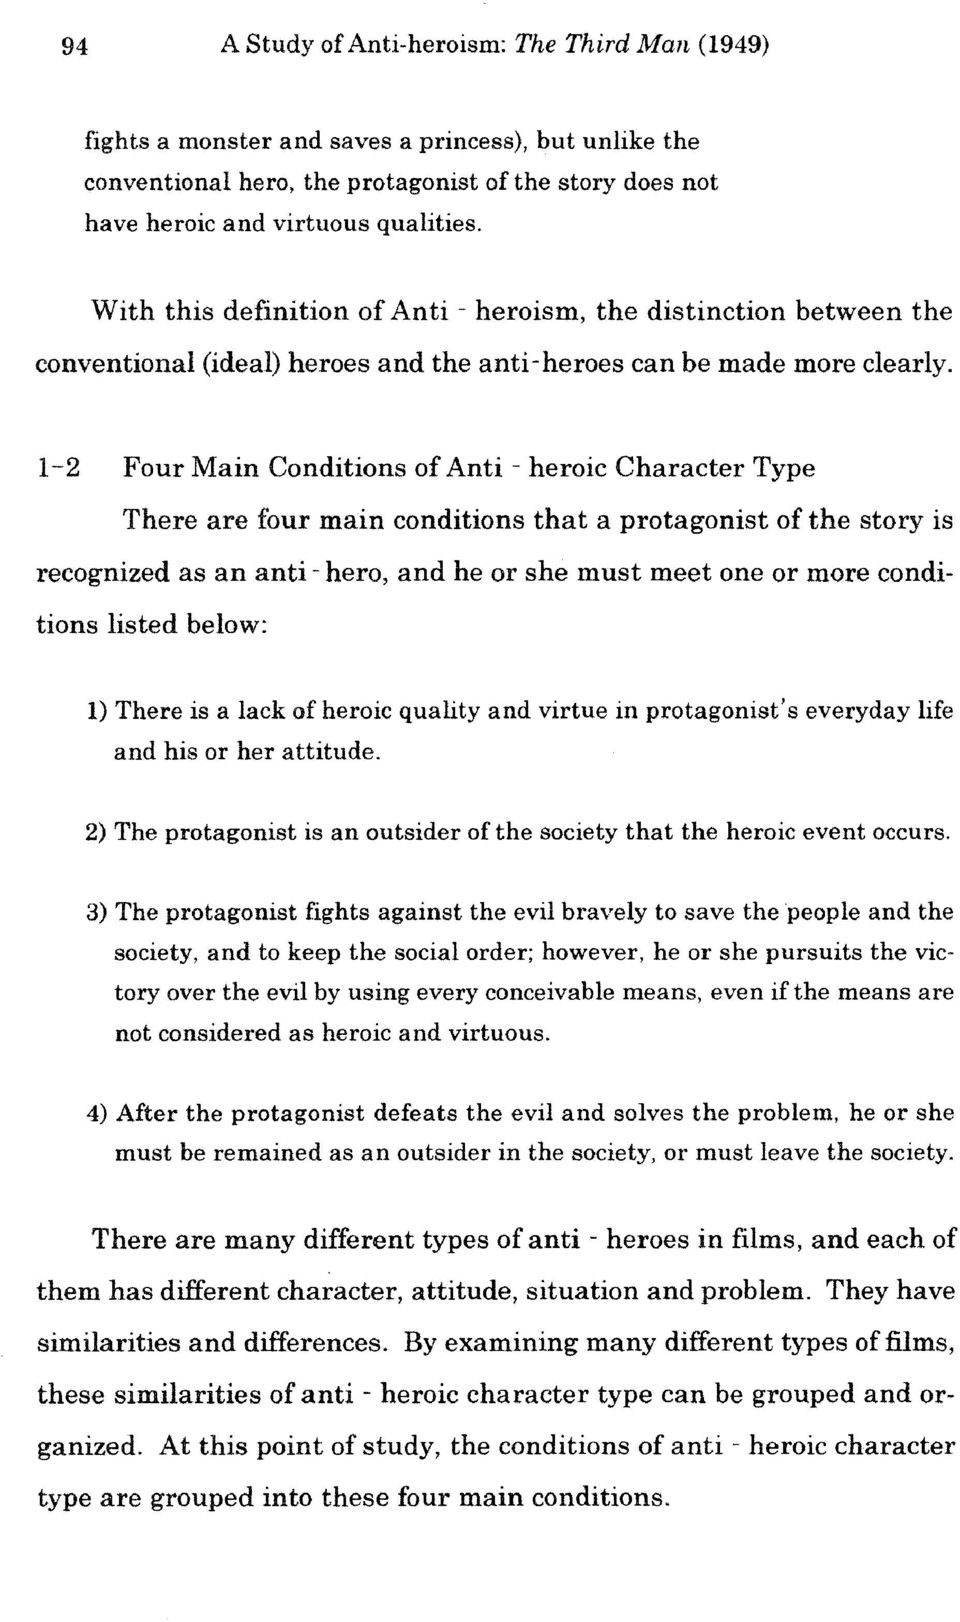 1-2 Four Main Conditions of Anti - heroic Character Type There are four main conditions that a protagonist of the story is recognized as an anti- hero, and he or she must meet one or more conditions